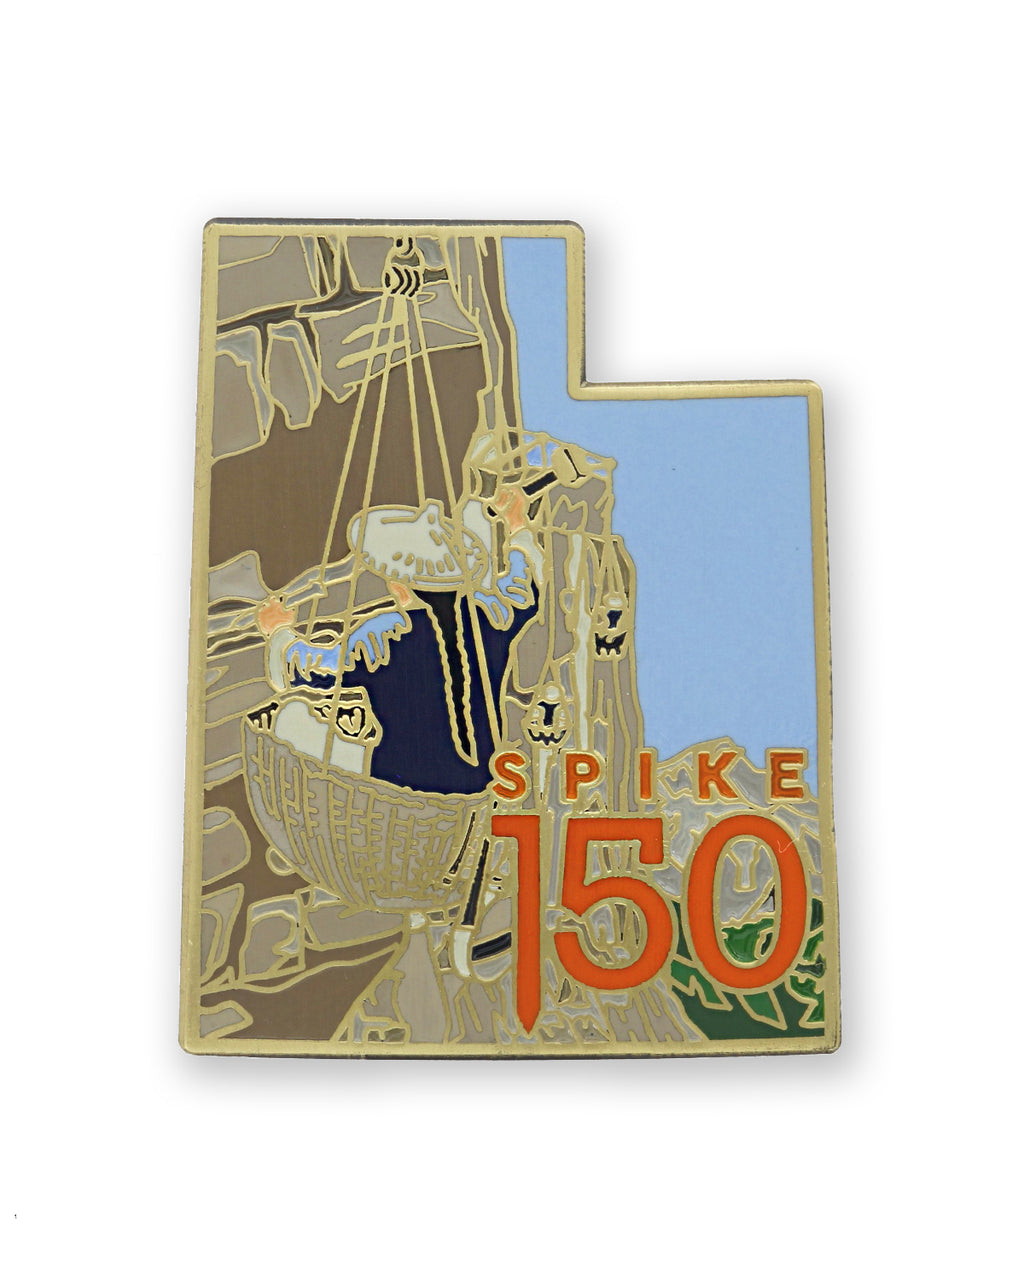 Chinese Railroad Worker Lapel Pin